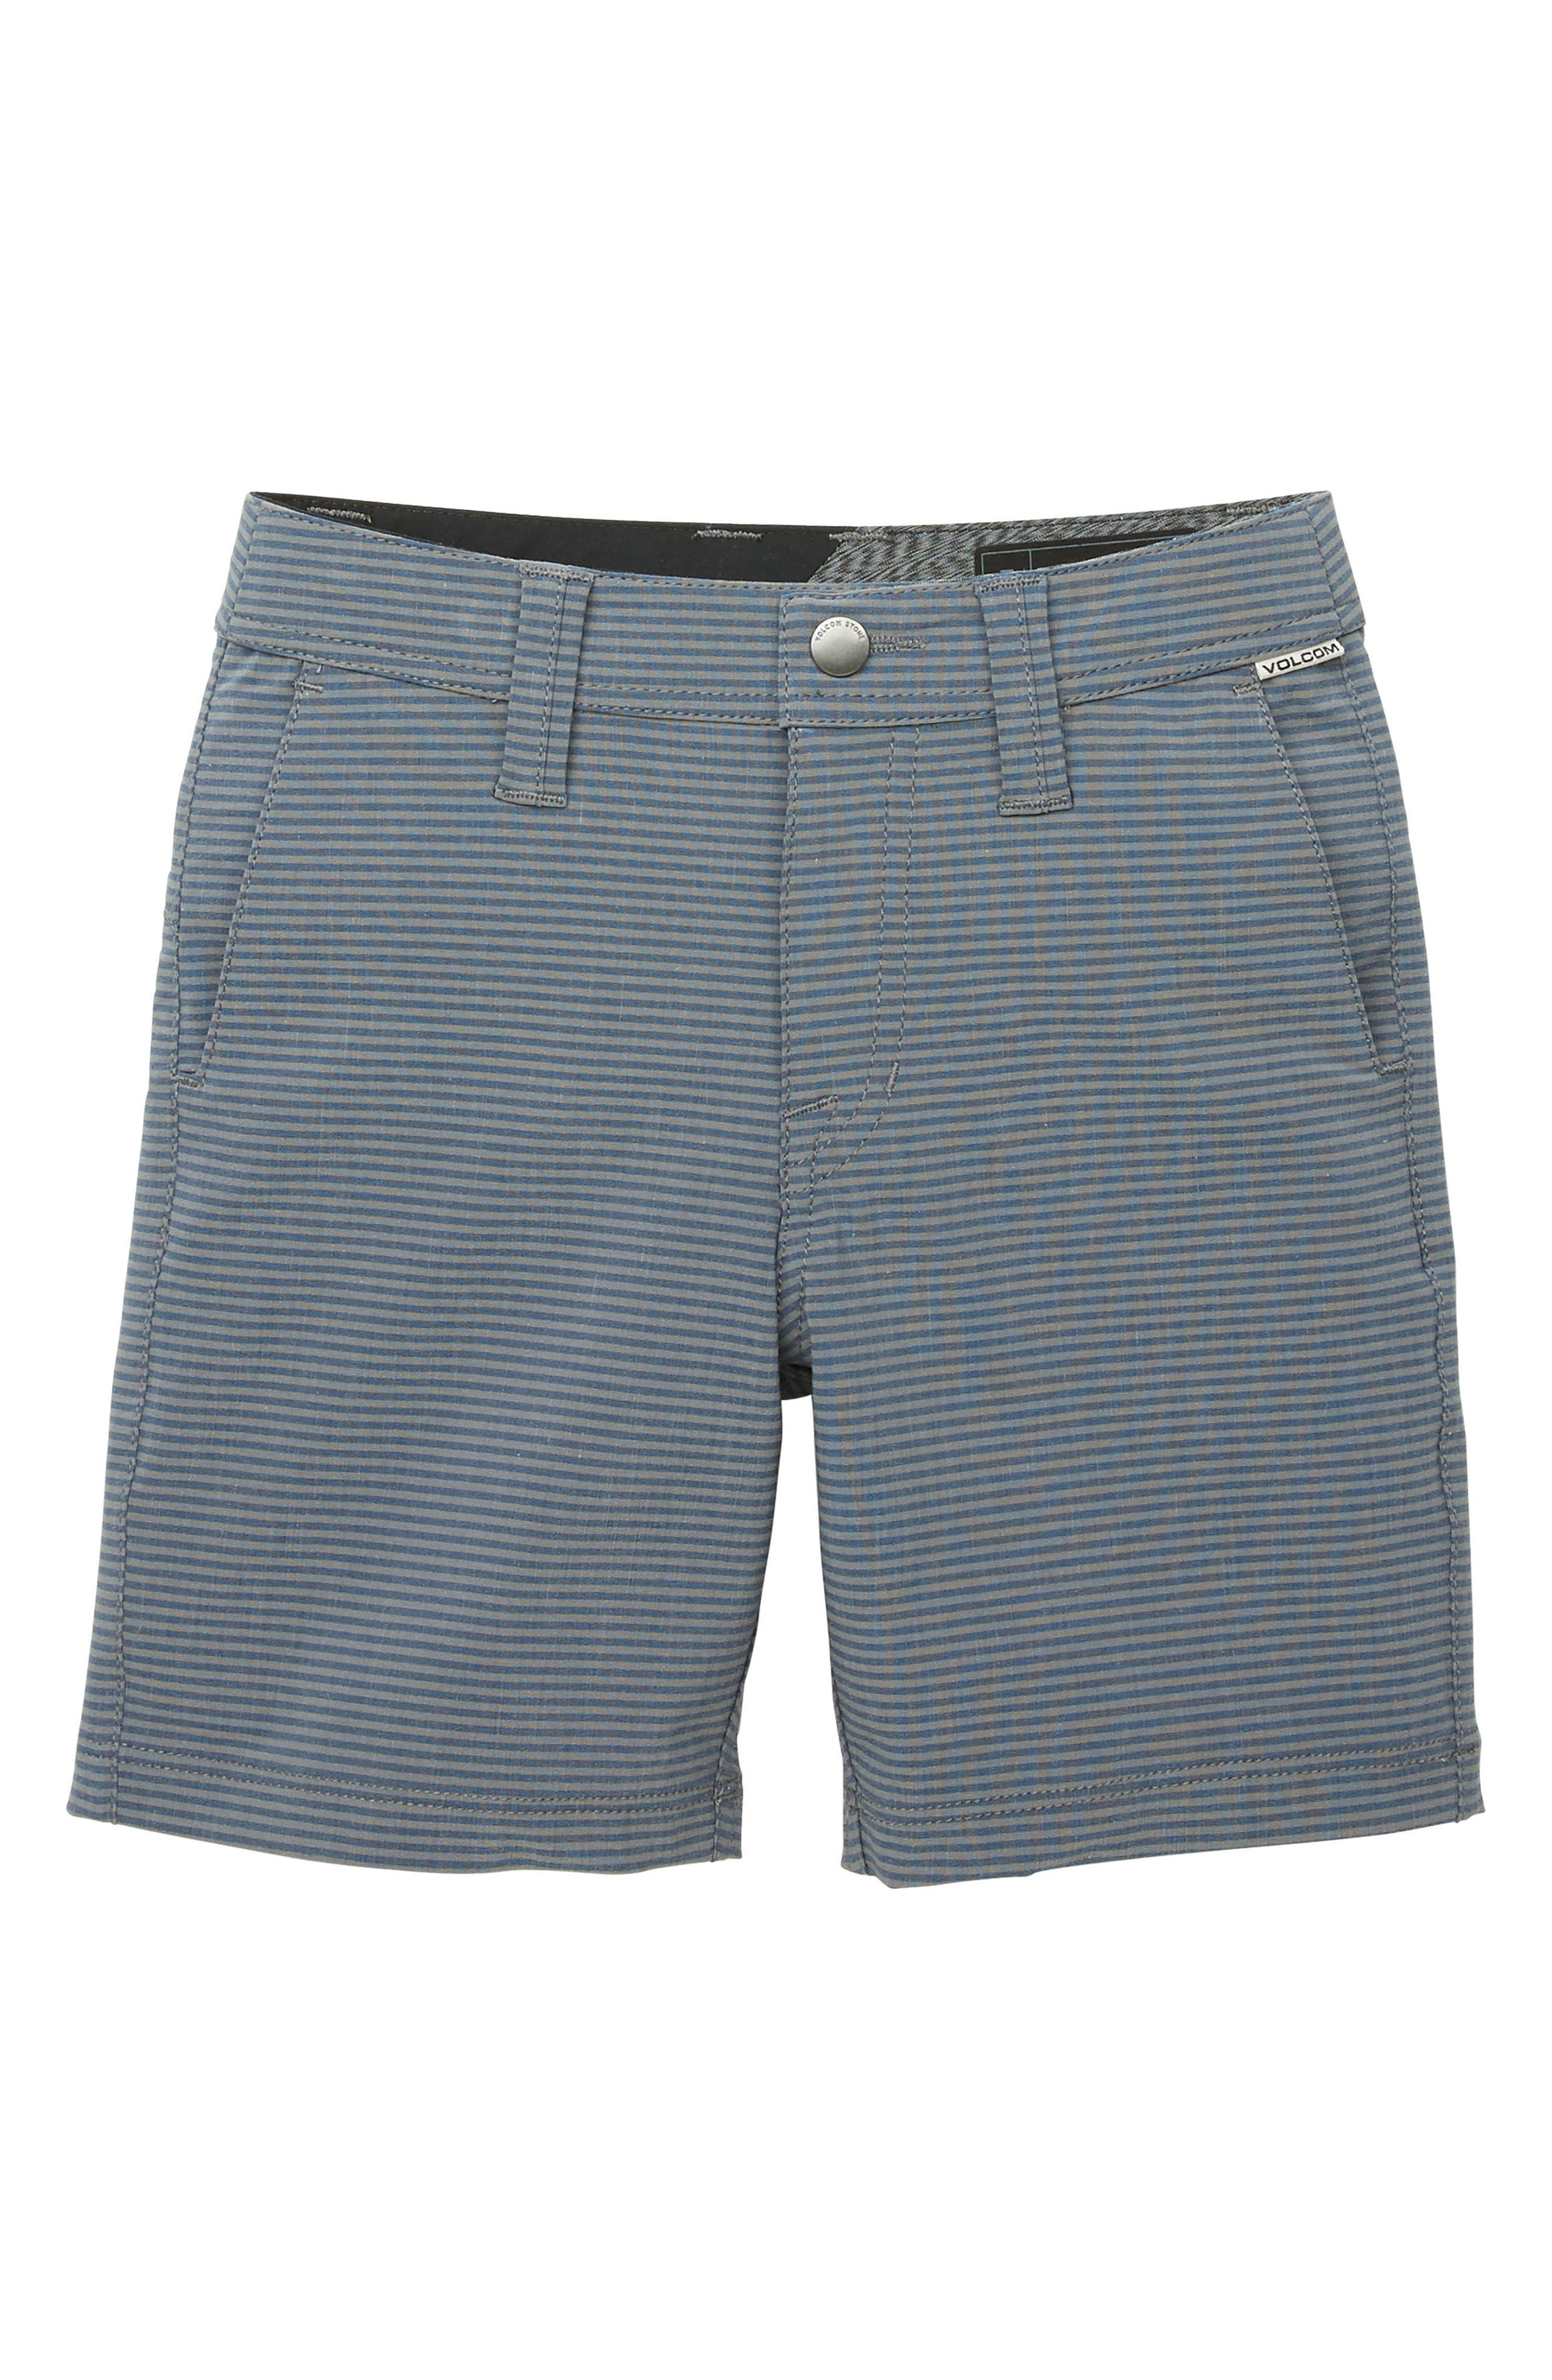 Frickin Surf N' Turf Mix Hybrid Shorts,                             Main thumbnail 1, color,                             Deep Blue